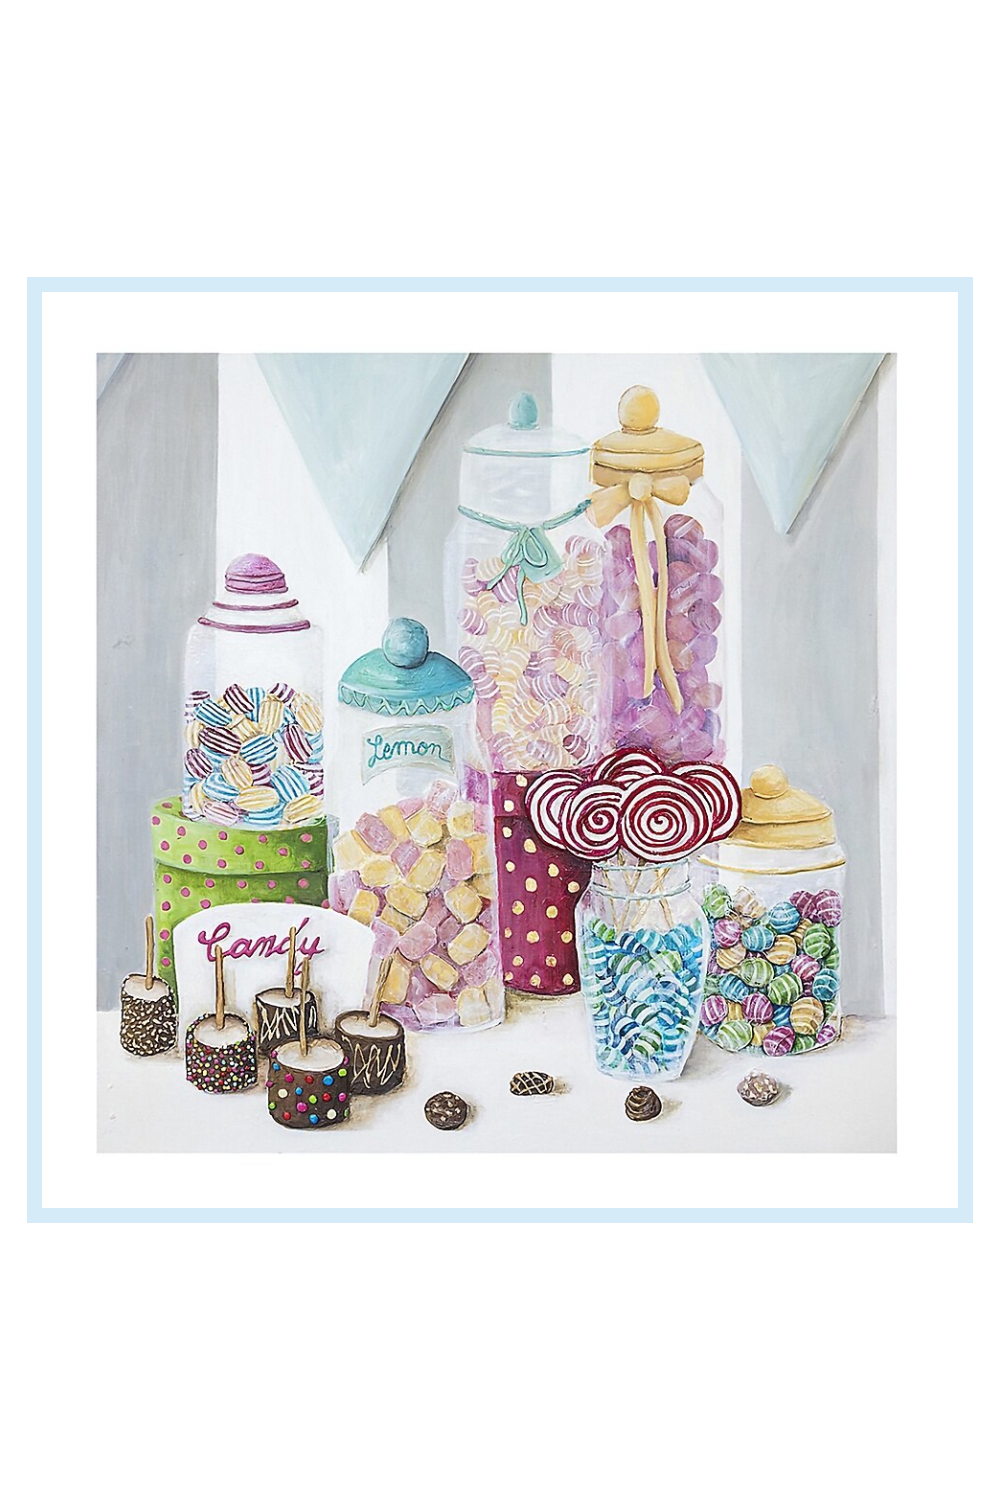 Canvas Candy   Candy Shop Treats Canvas Wall Art - Add a sweet touch to your decor with the Candy Shop Treats Canvas Wall Art from Canvas Candy. Colorful and stylish, the design of all the delicious chocolate and candies turn any wall into a focal point. Wrapped canvas is easy to wall mount. - living room decor